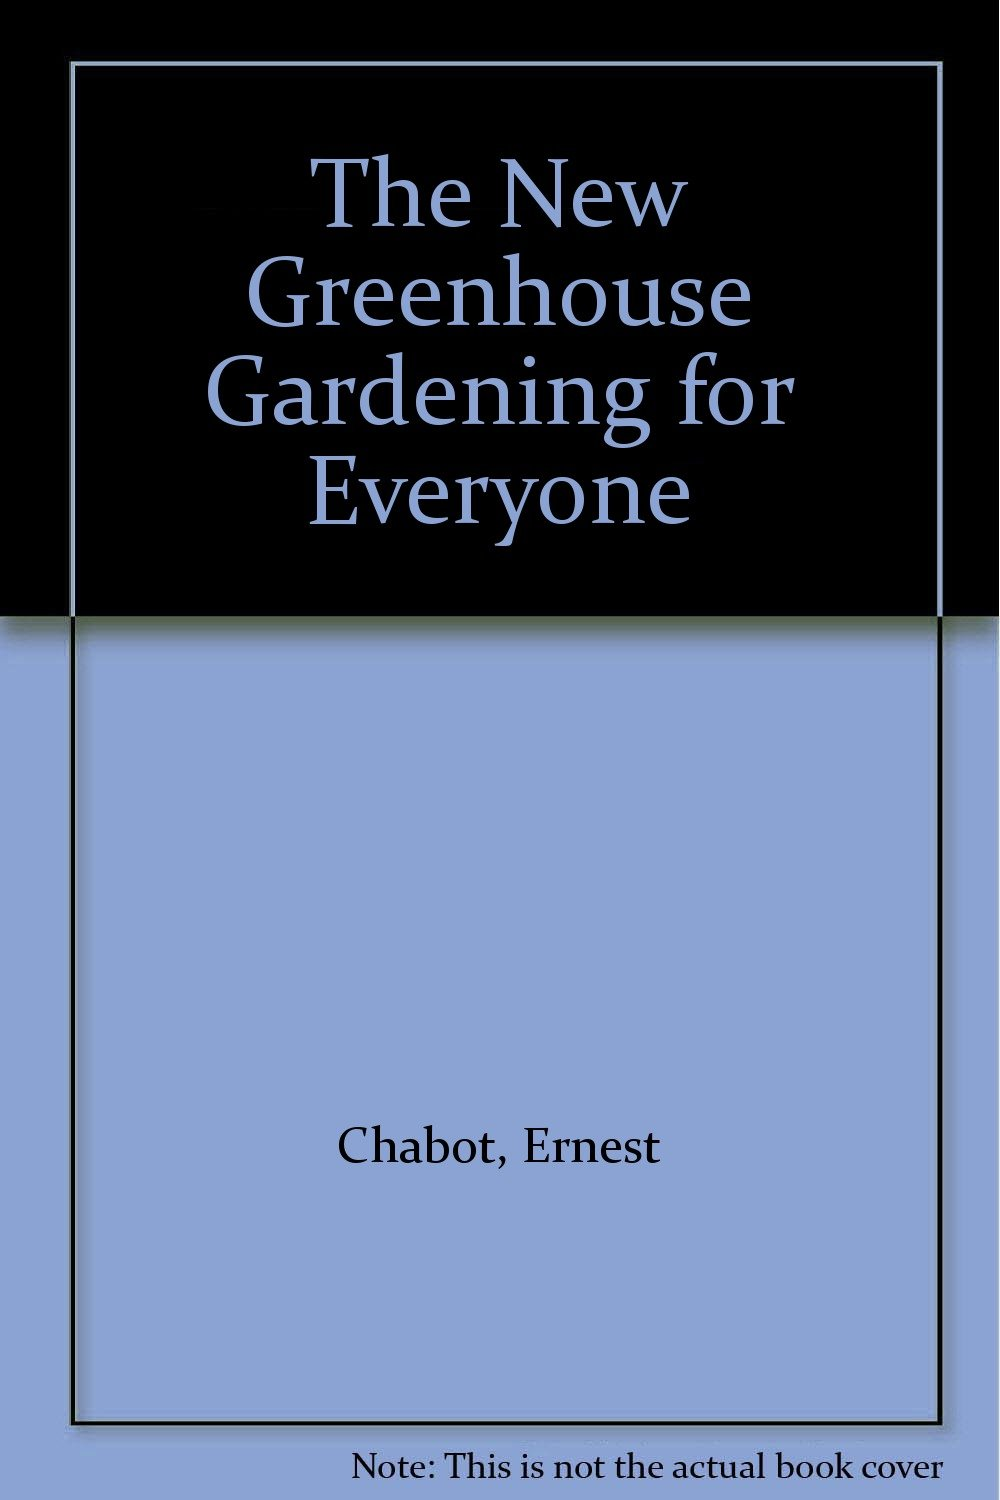 The New Greenhouse Gardening for Everyone